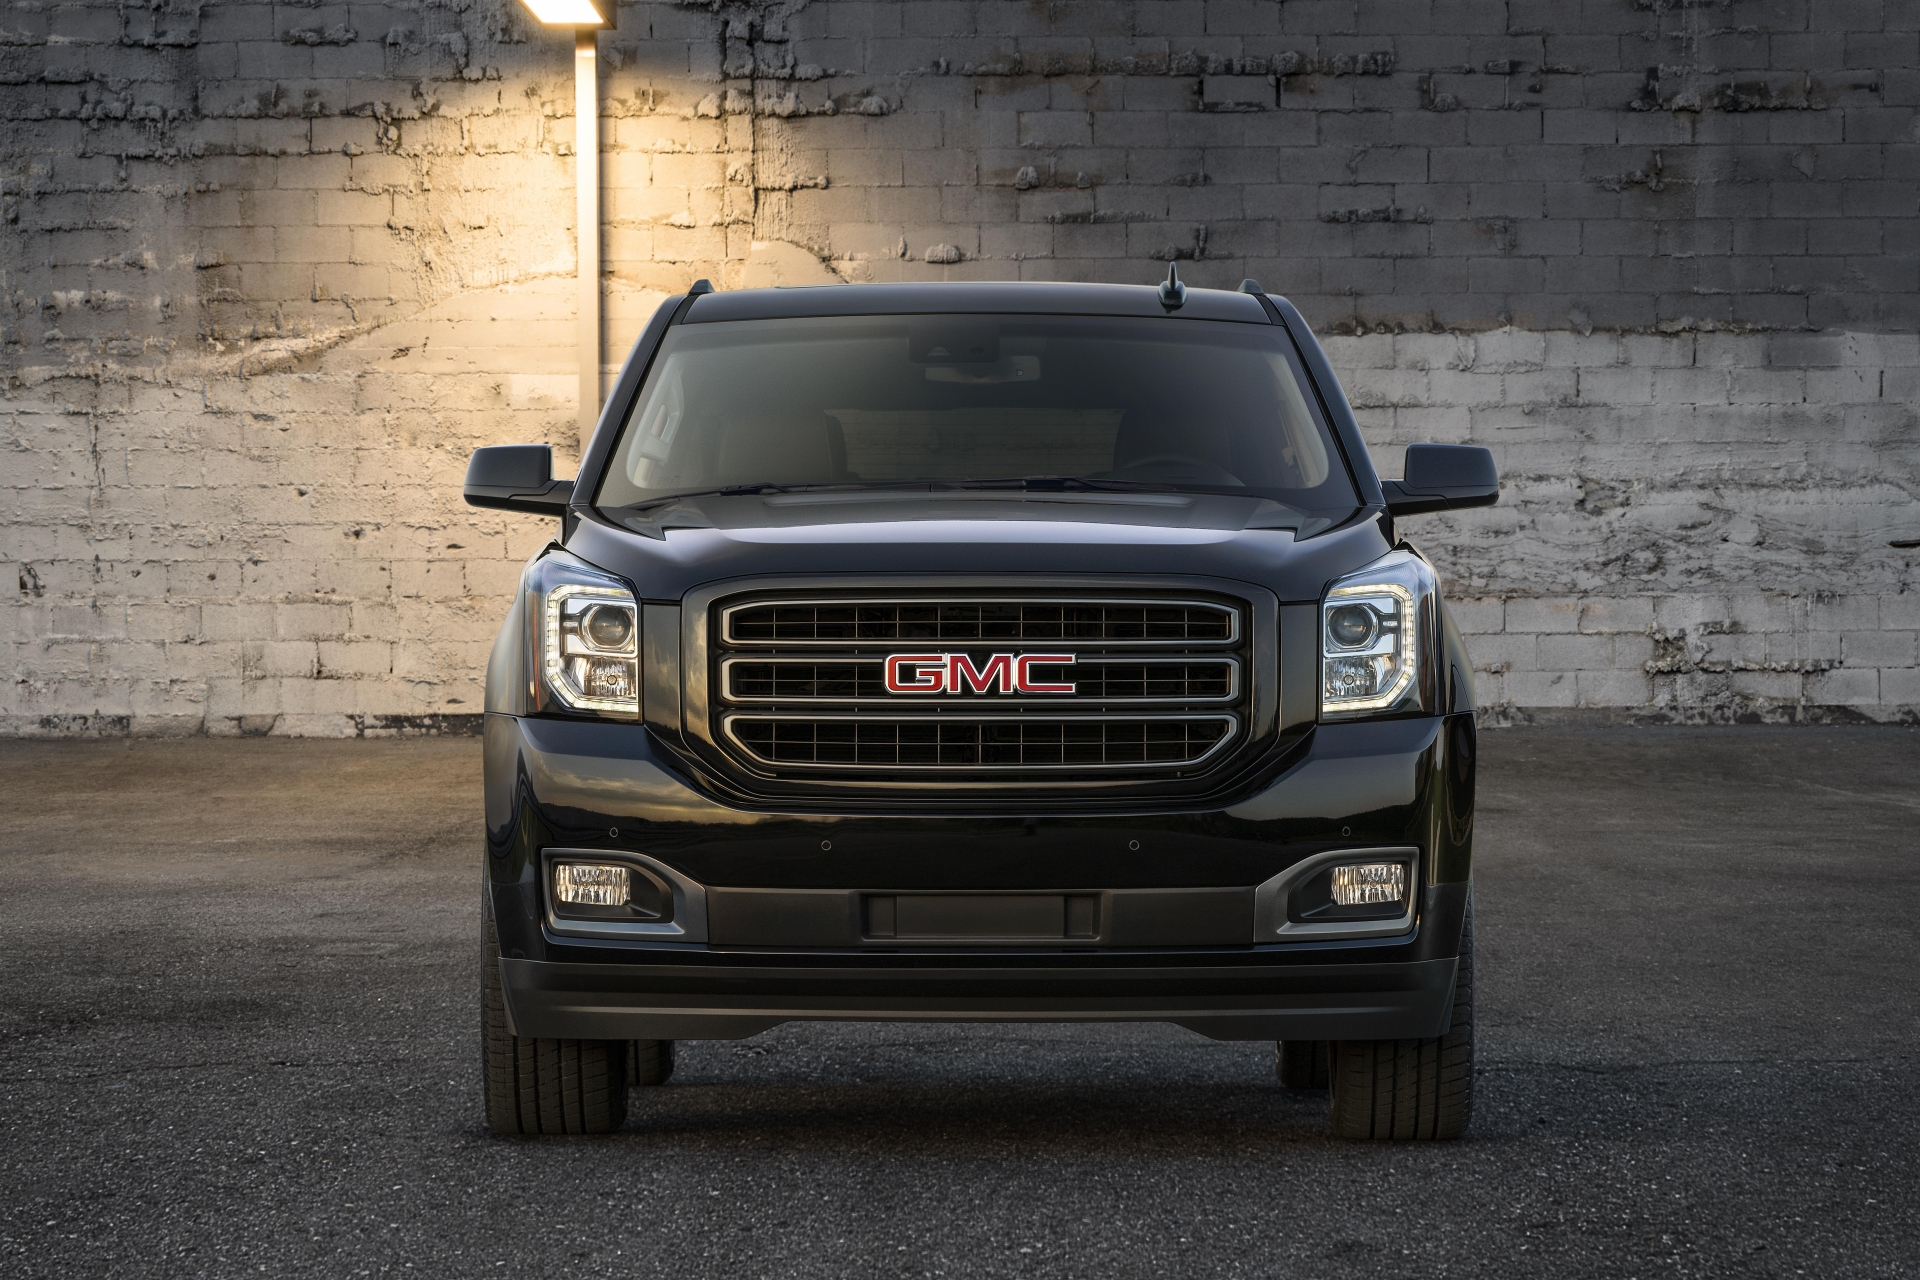 2019 Gmc Yukon Graphite Editions Welcome To The Dark Side